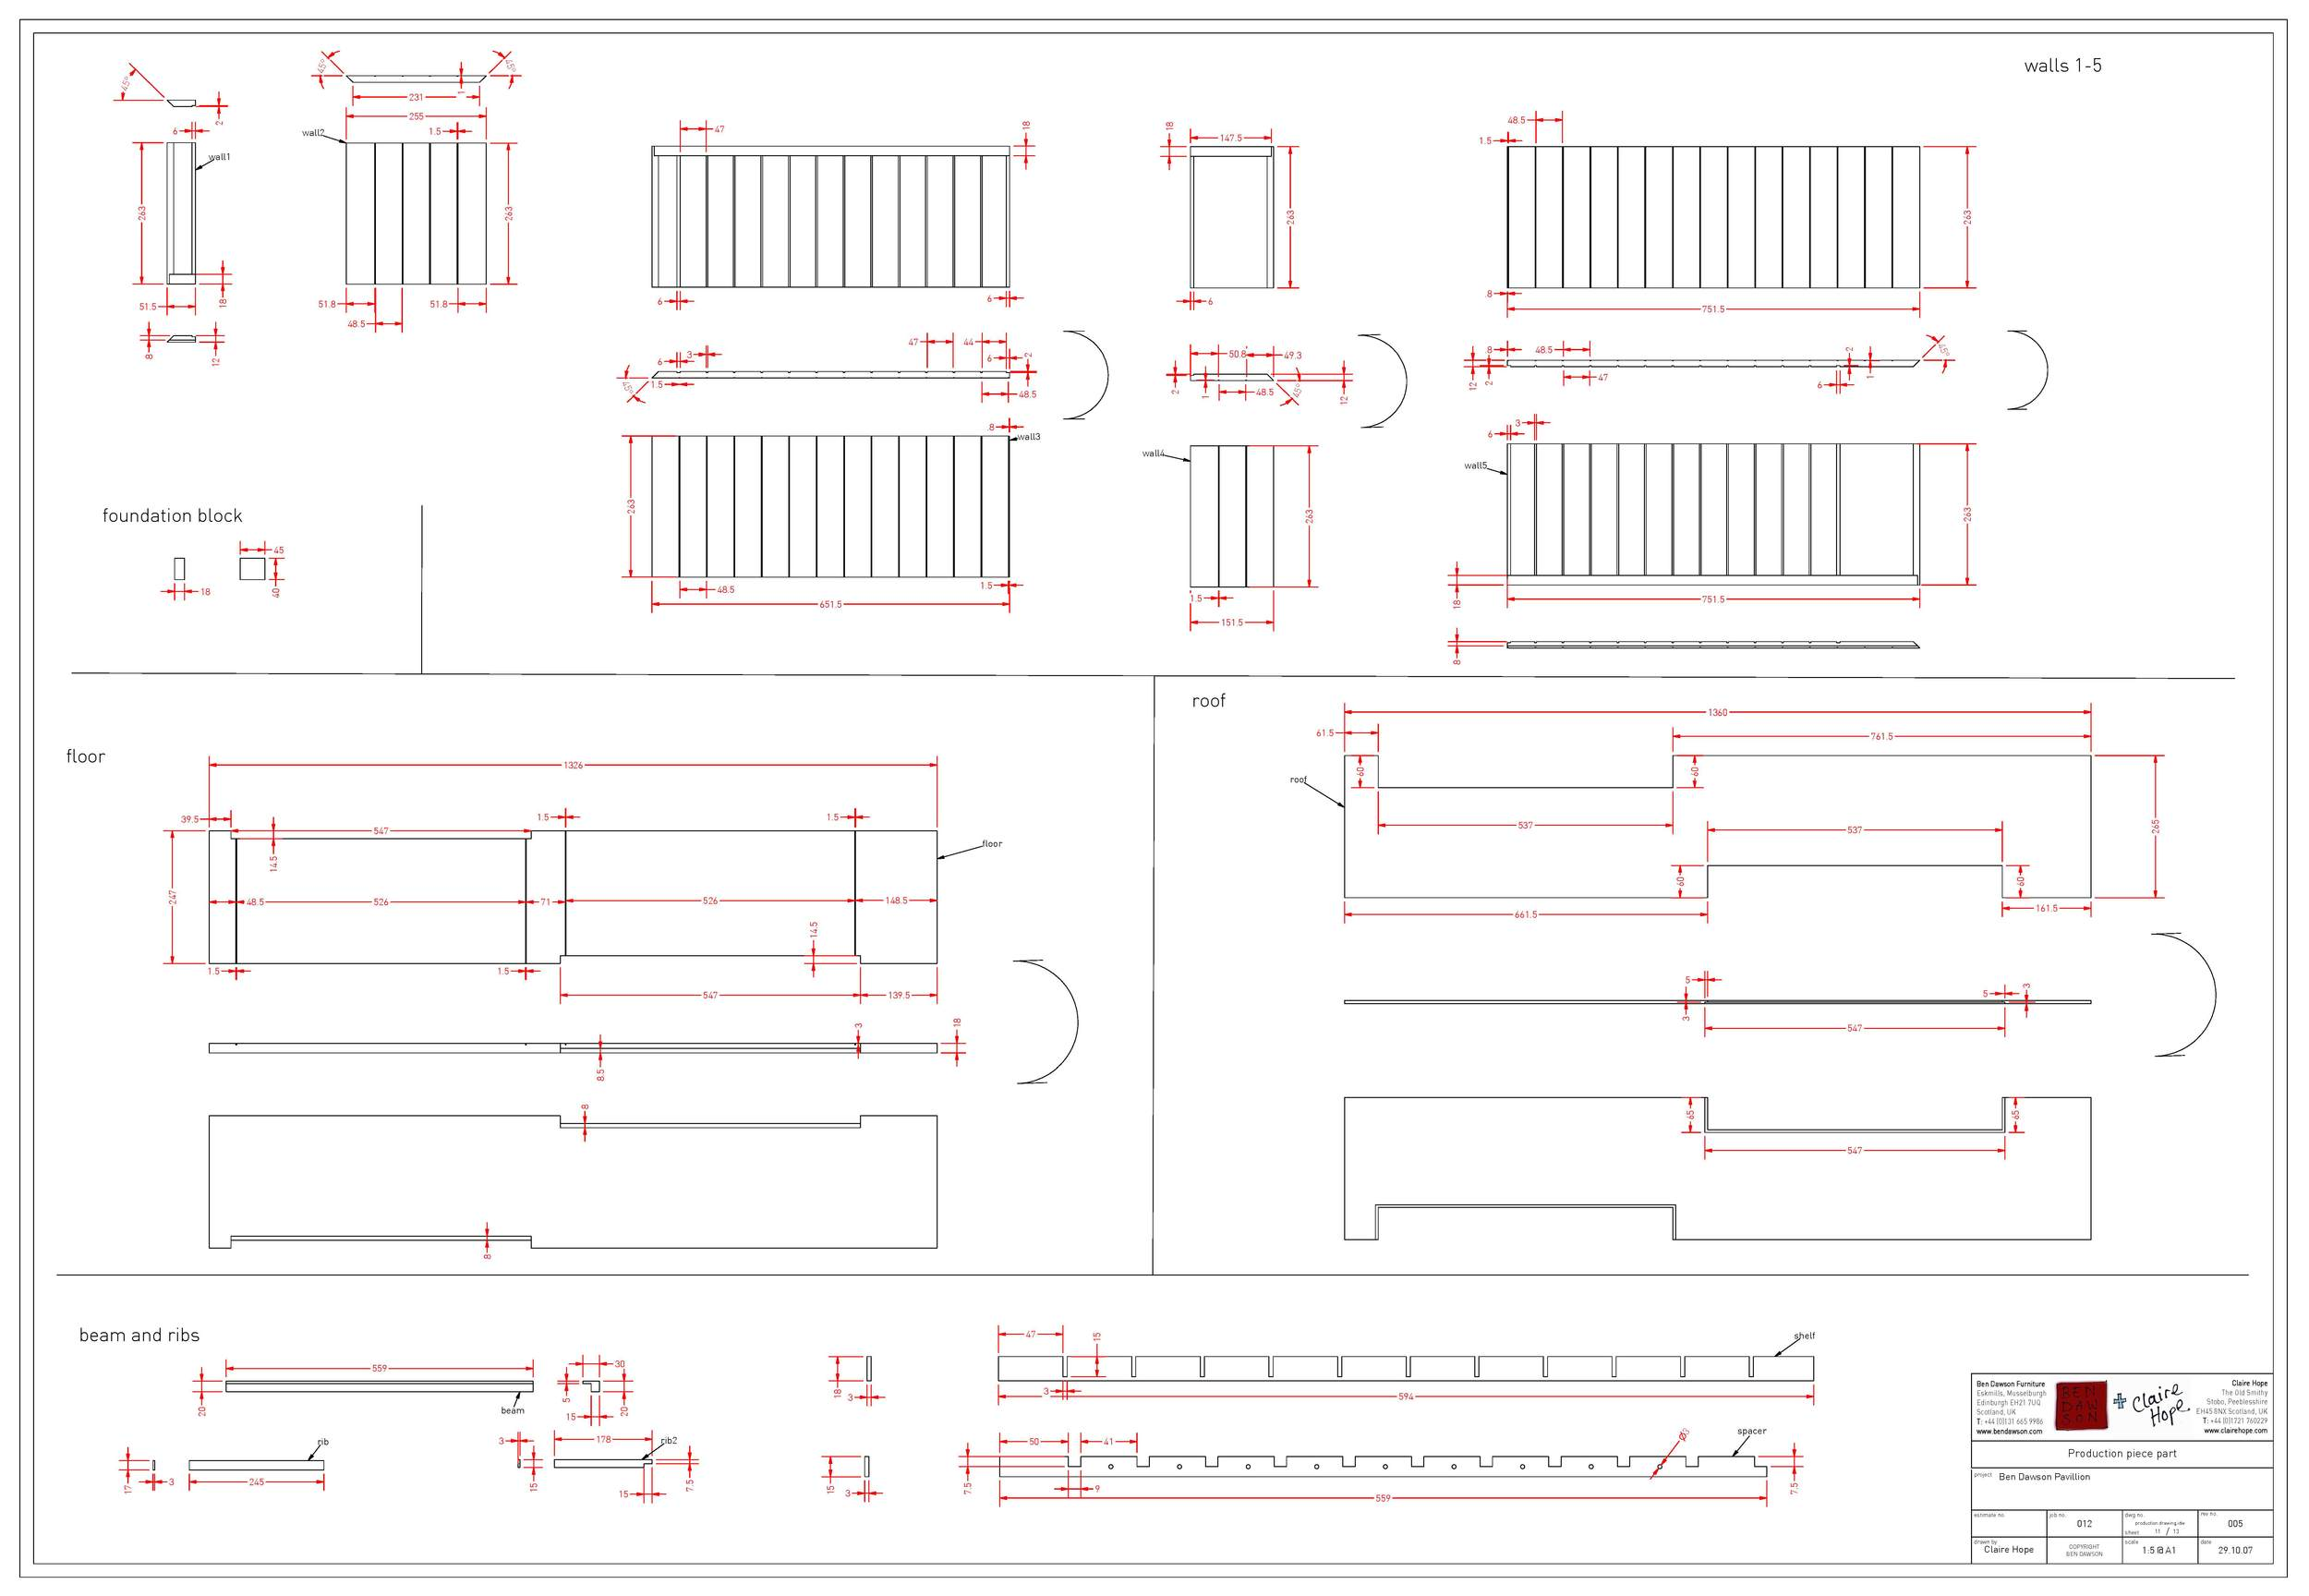 production drawing_Page_11.jpg